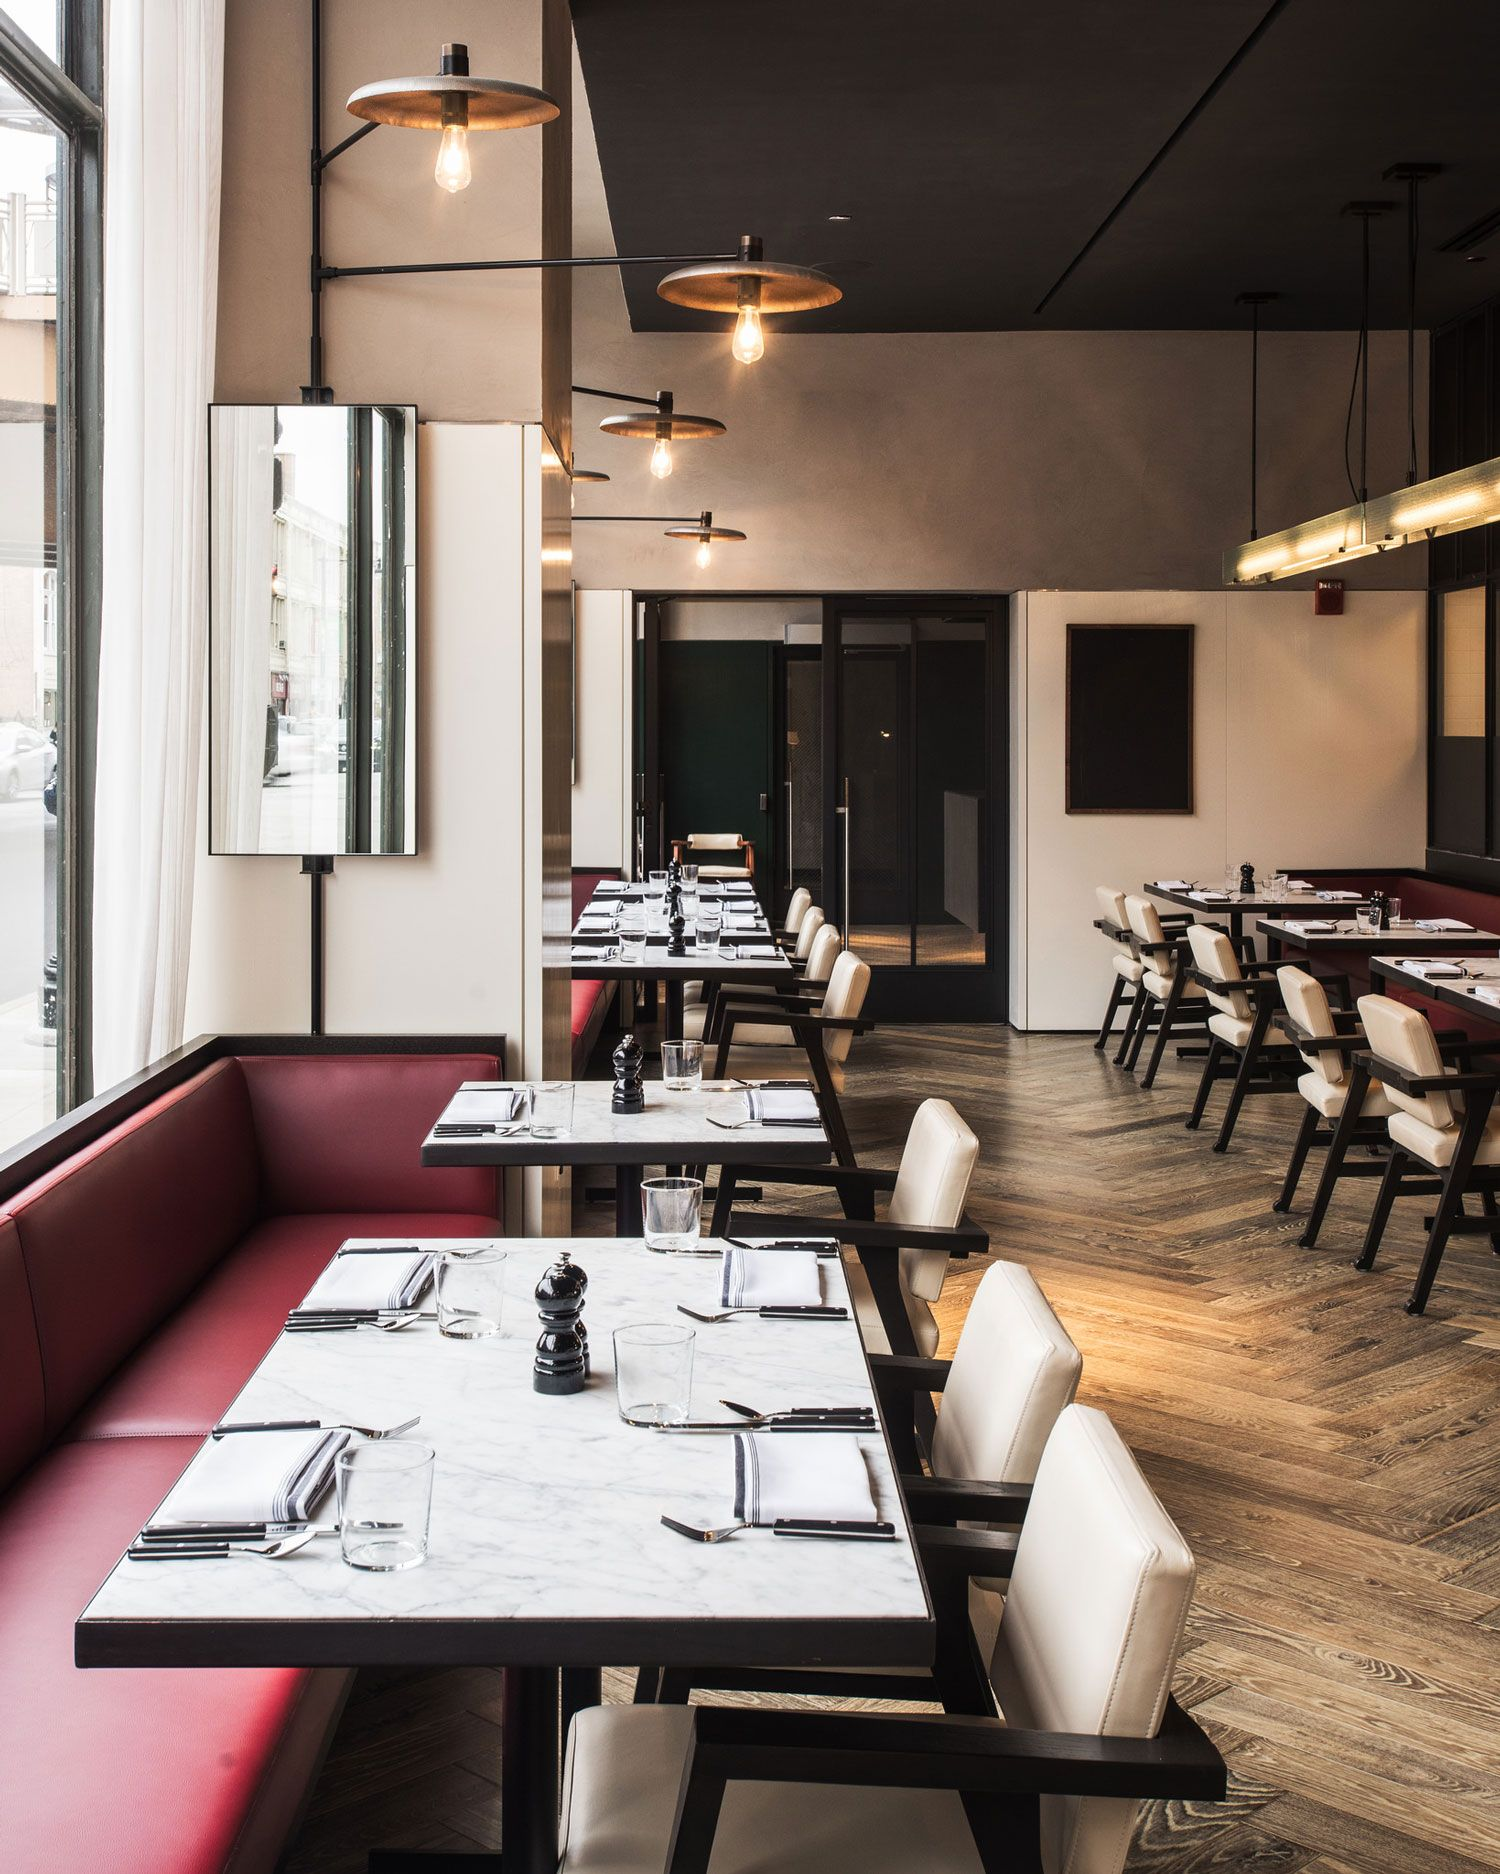 Eclectic Restaurant Decorating: Grupo Habita Launches Two Sister Hotels In Chicago